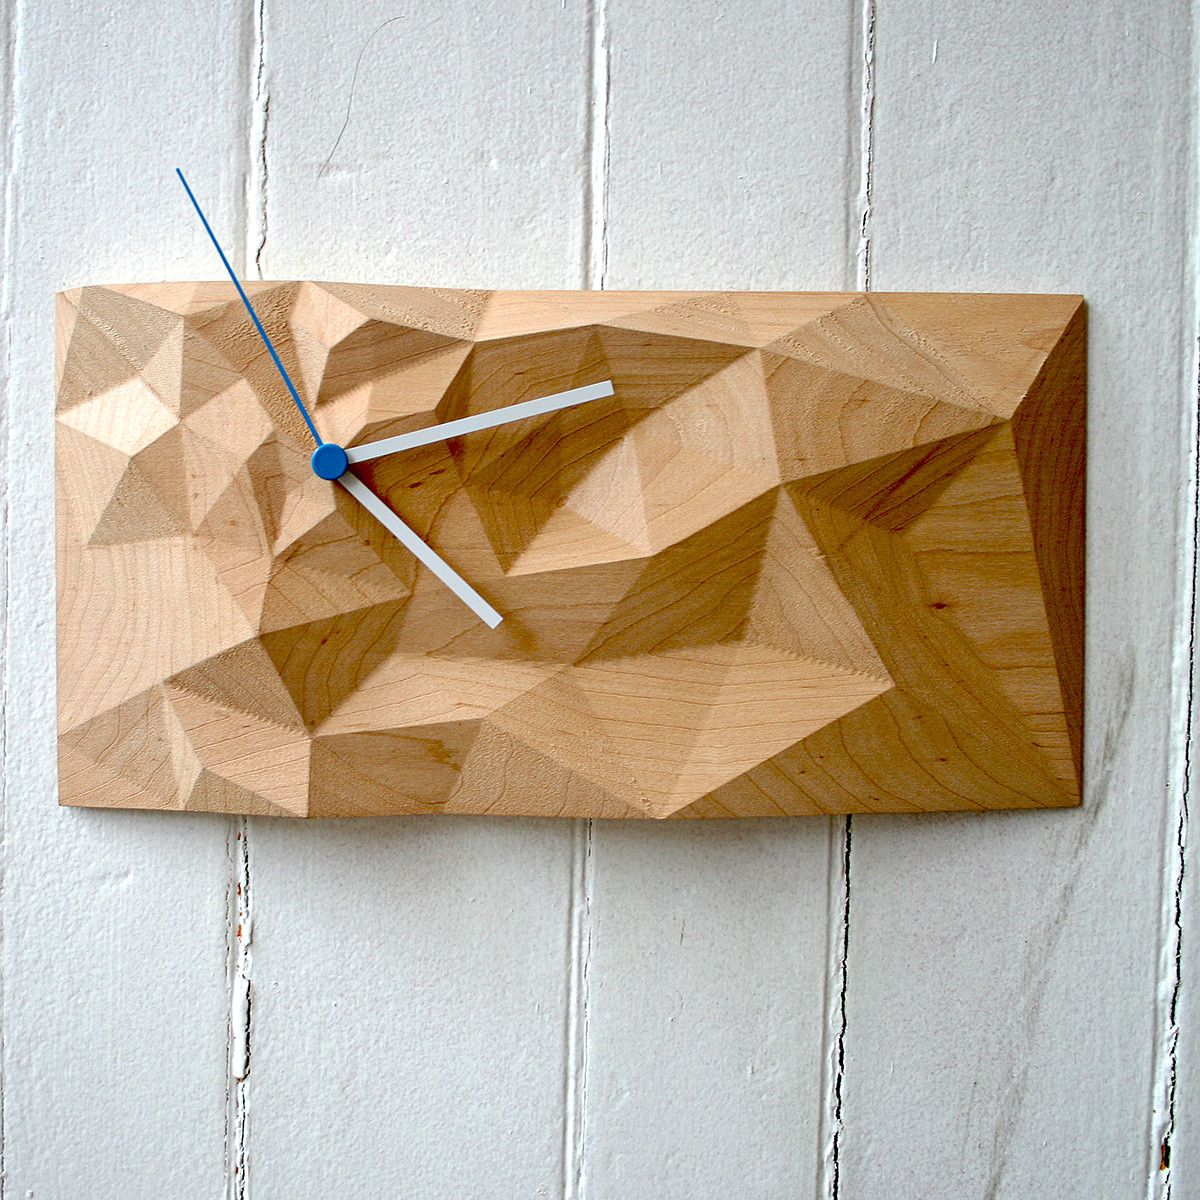 The Block Clock is an exploration into both traditional ...